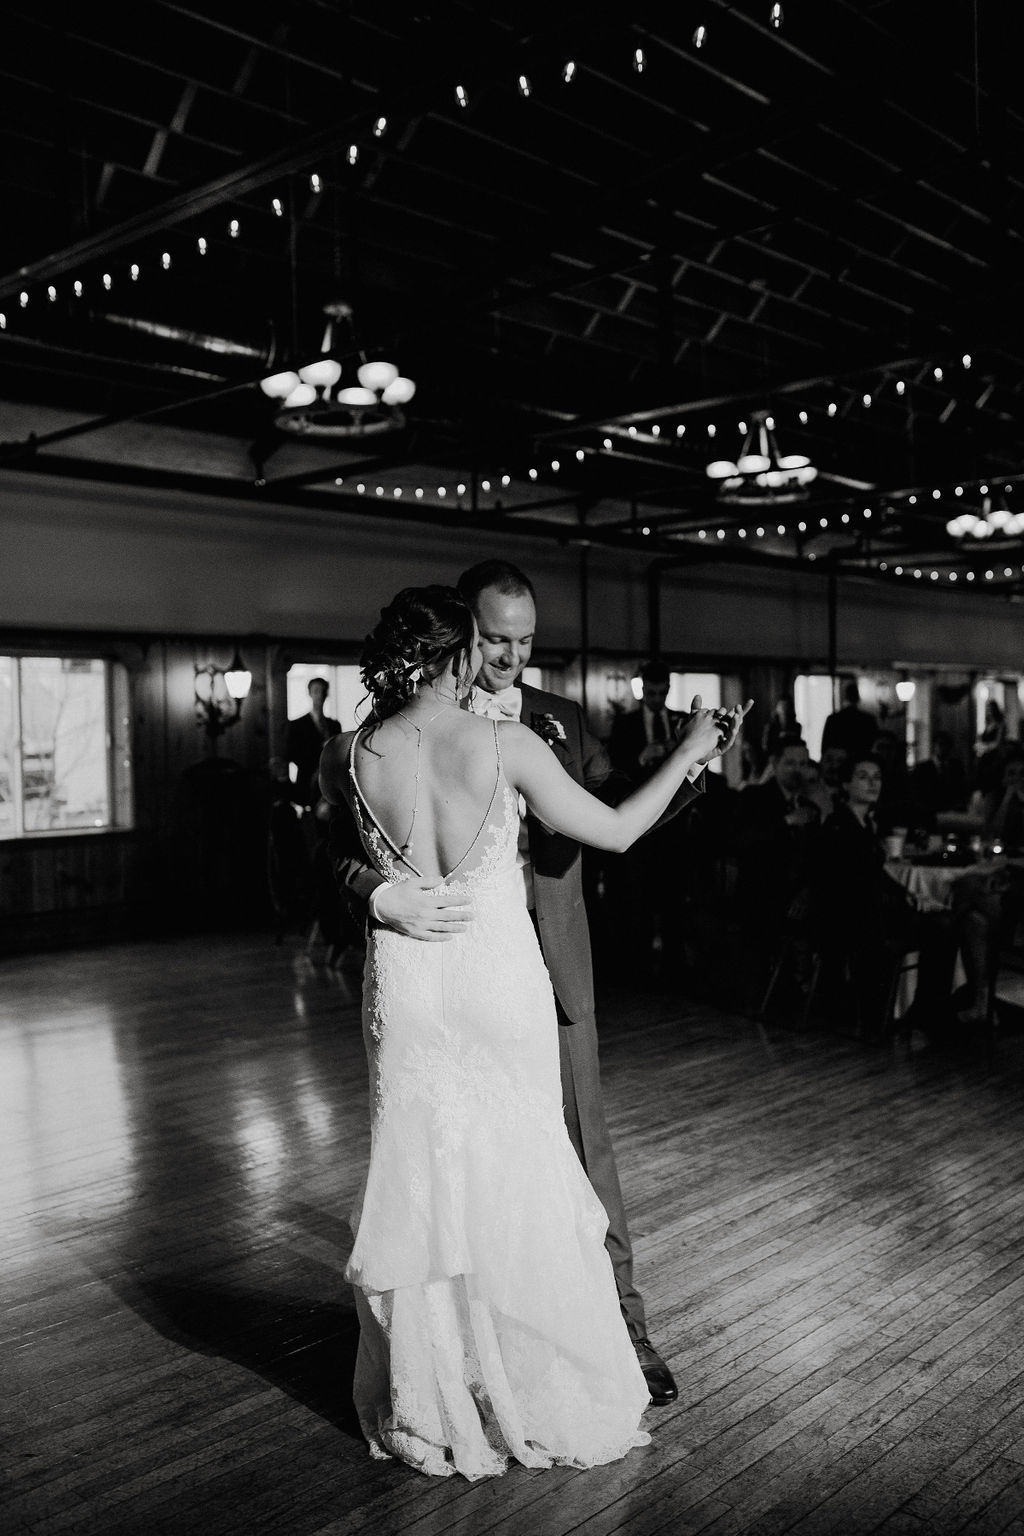 60 first dance as husband and wife ceremony rachel desjardins studio wedding story telling moments photography kellermans event center minnesota emotional.jpg